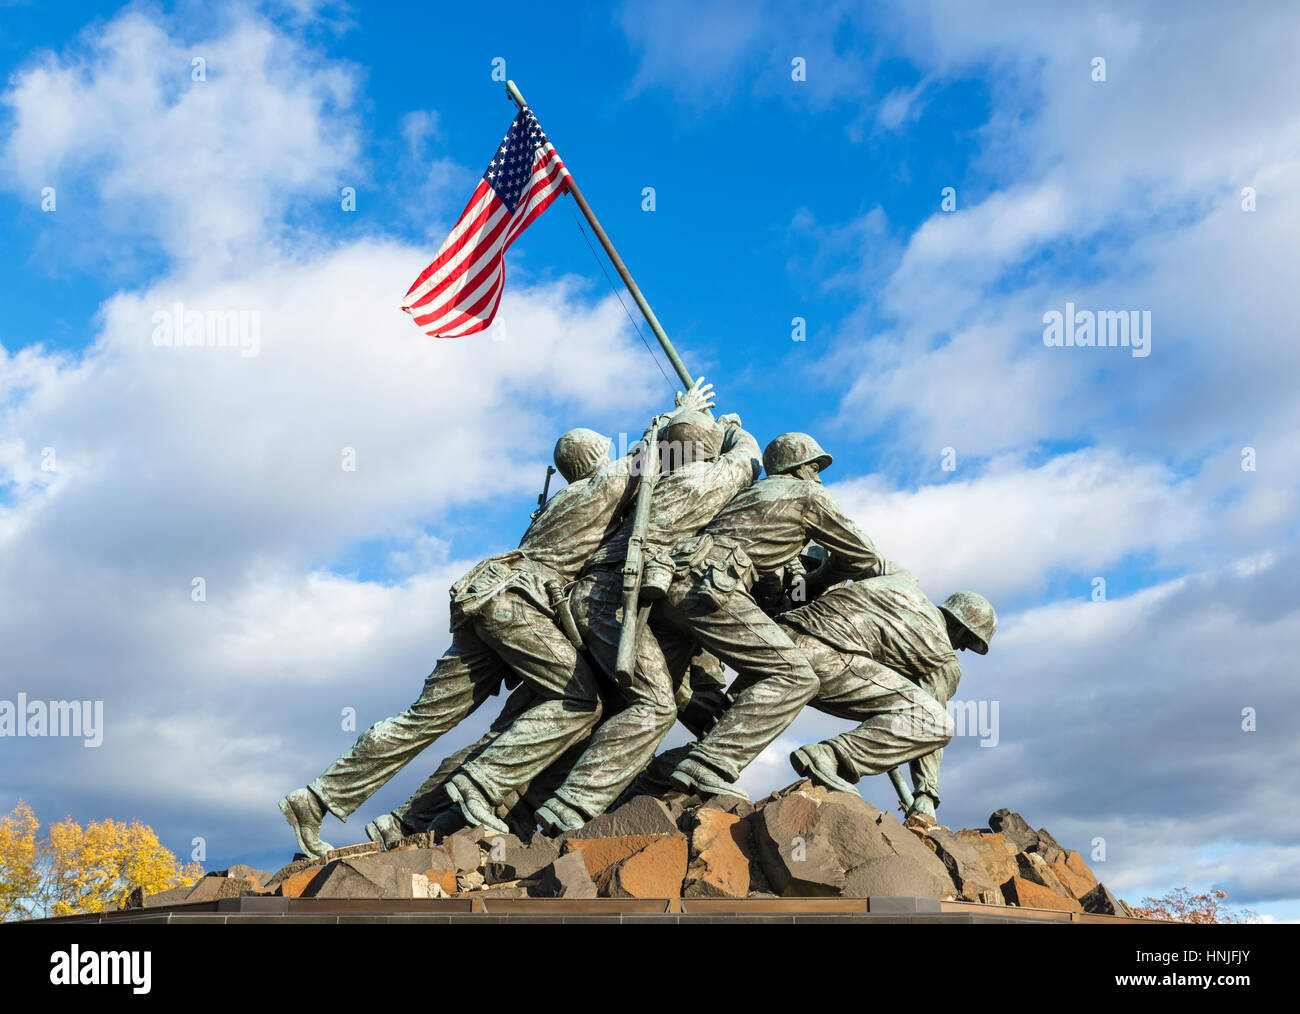 Iwo Jima Memorial, Washington DC. The United States Marine Corps War Memorial, near Rosslyn, Arlington County, Virginia, - Stock Image